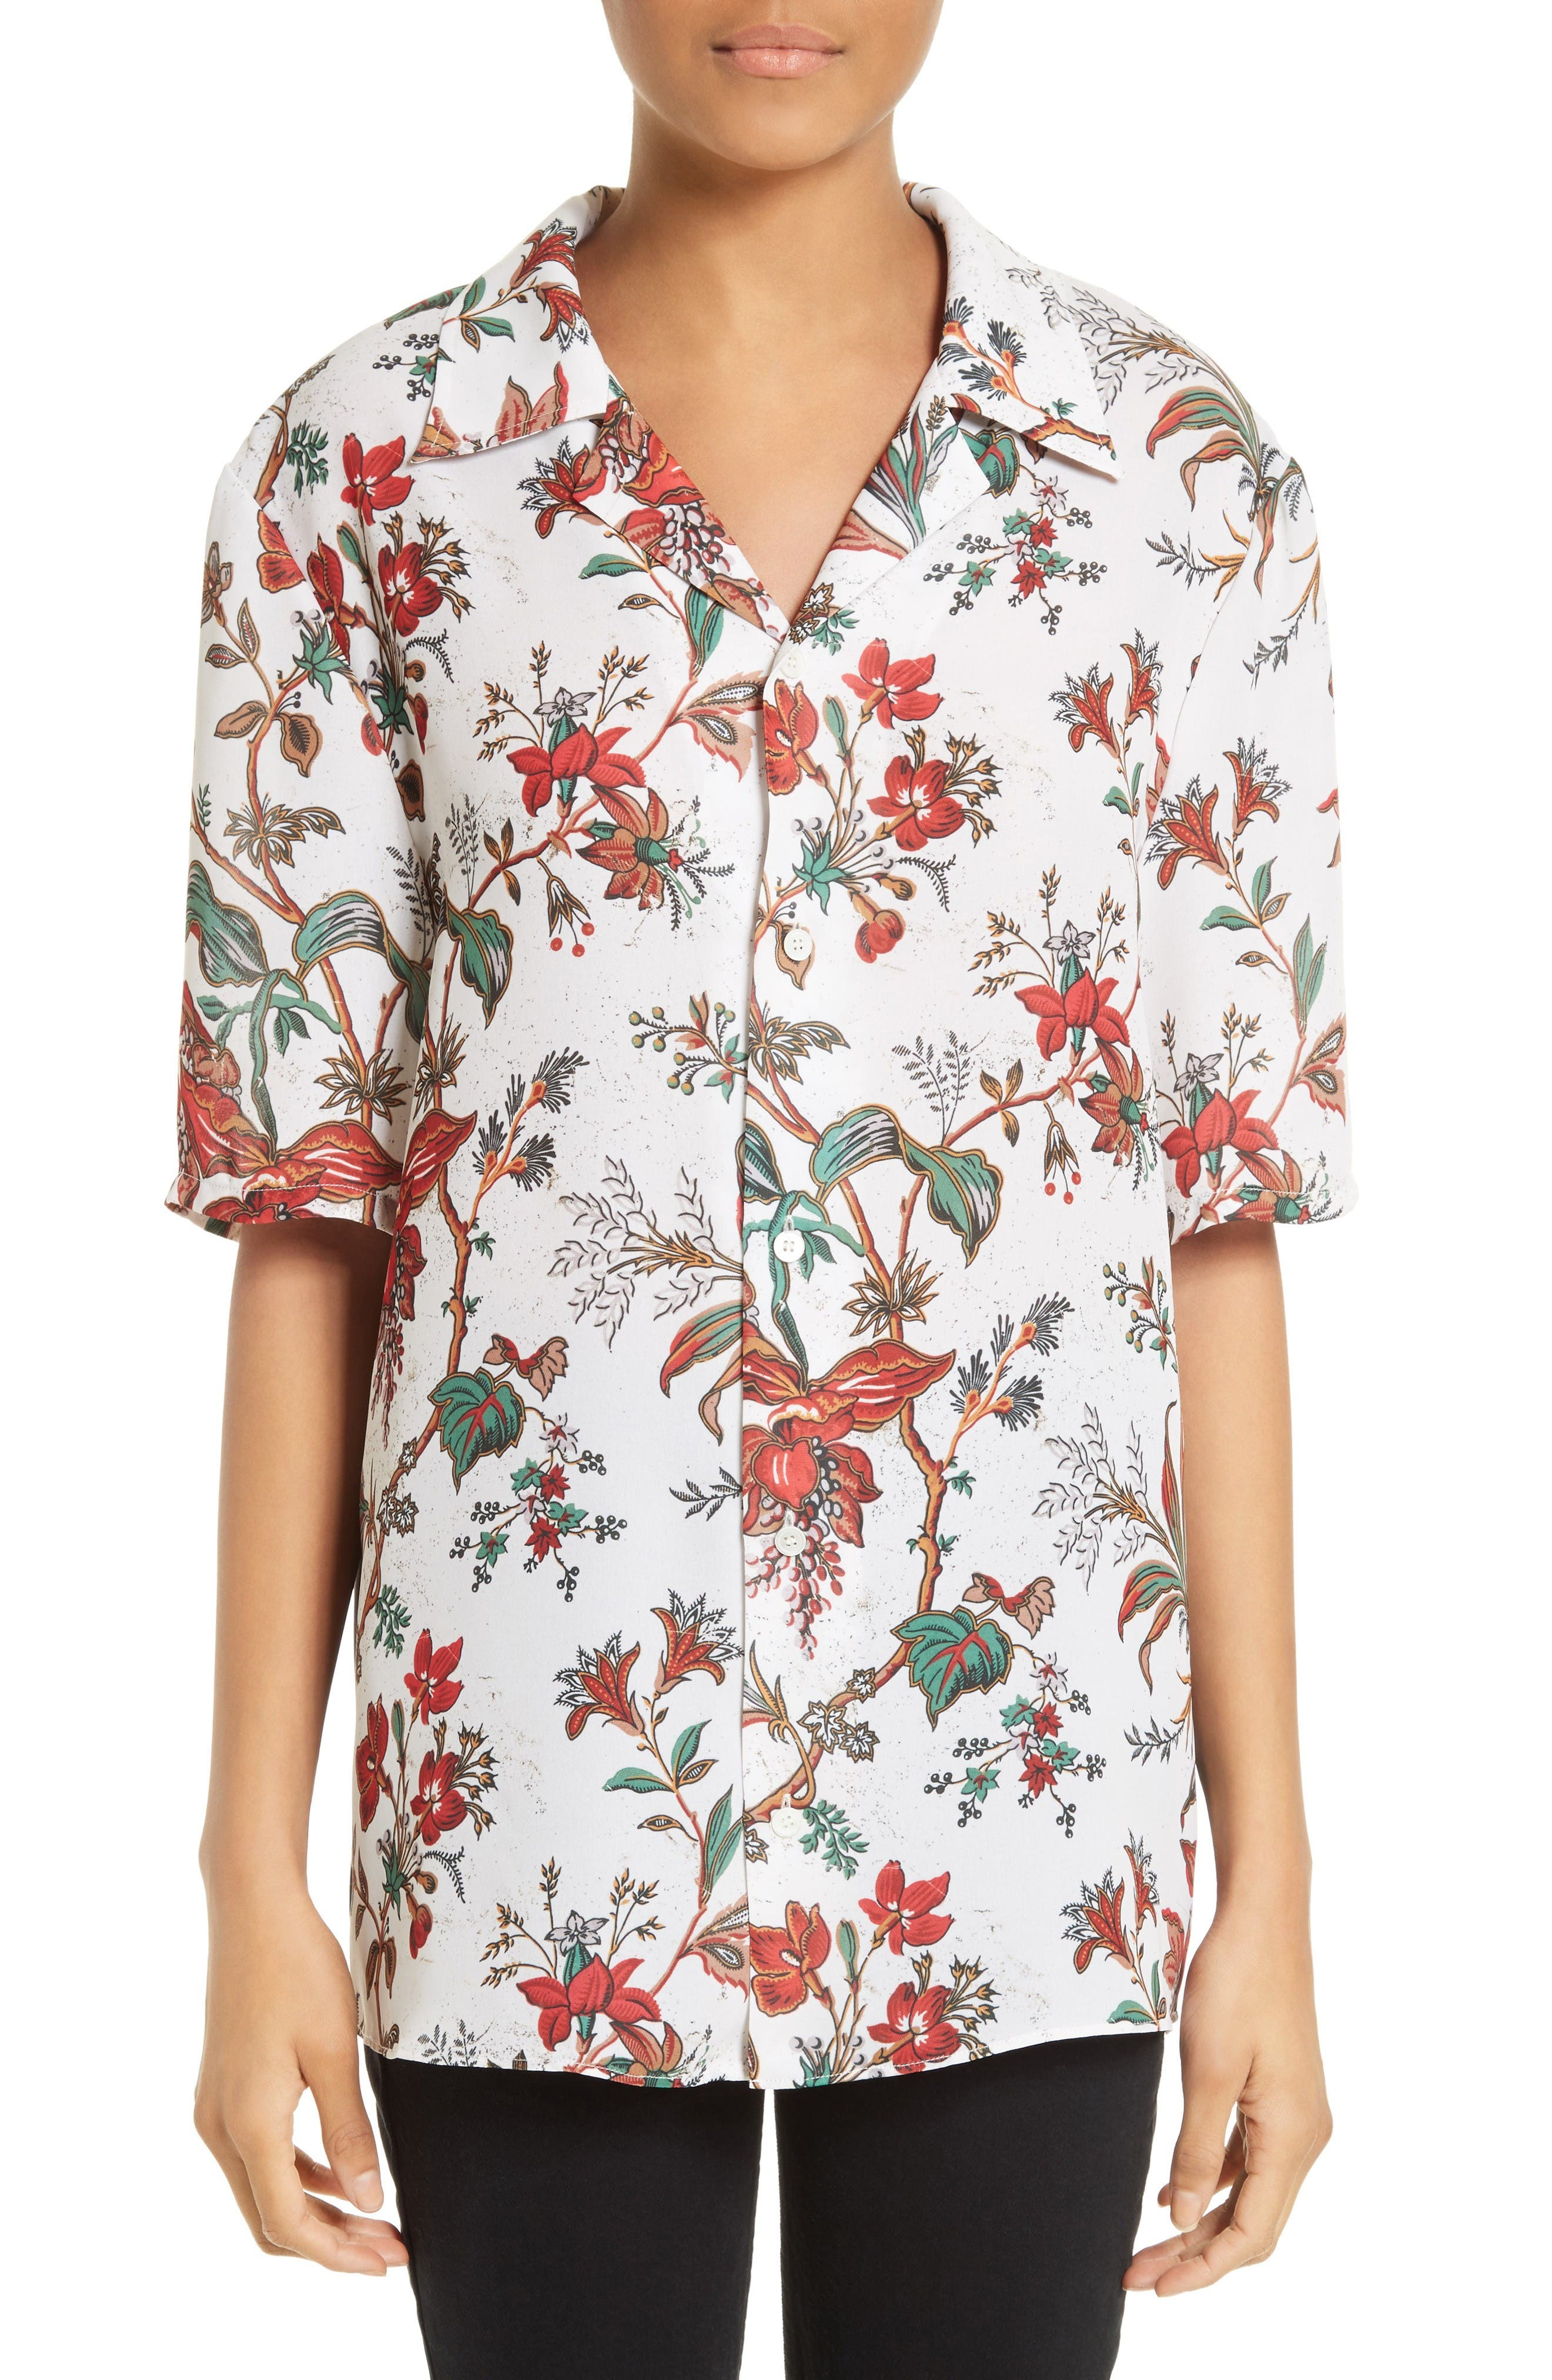 Alternate Image 1 Selected - McQ Alexander McQueen Billy Floral Print Blouse